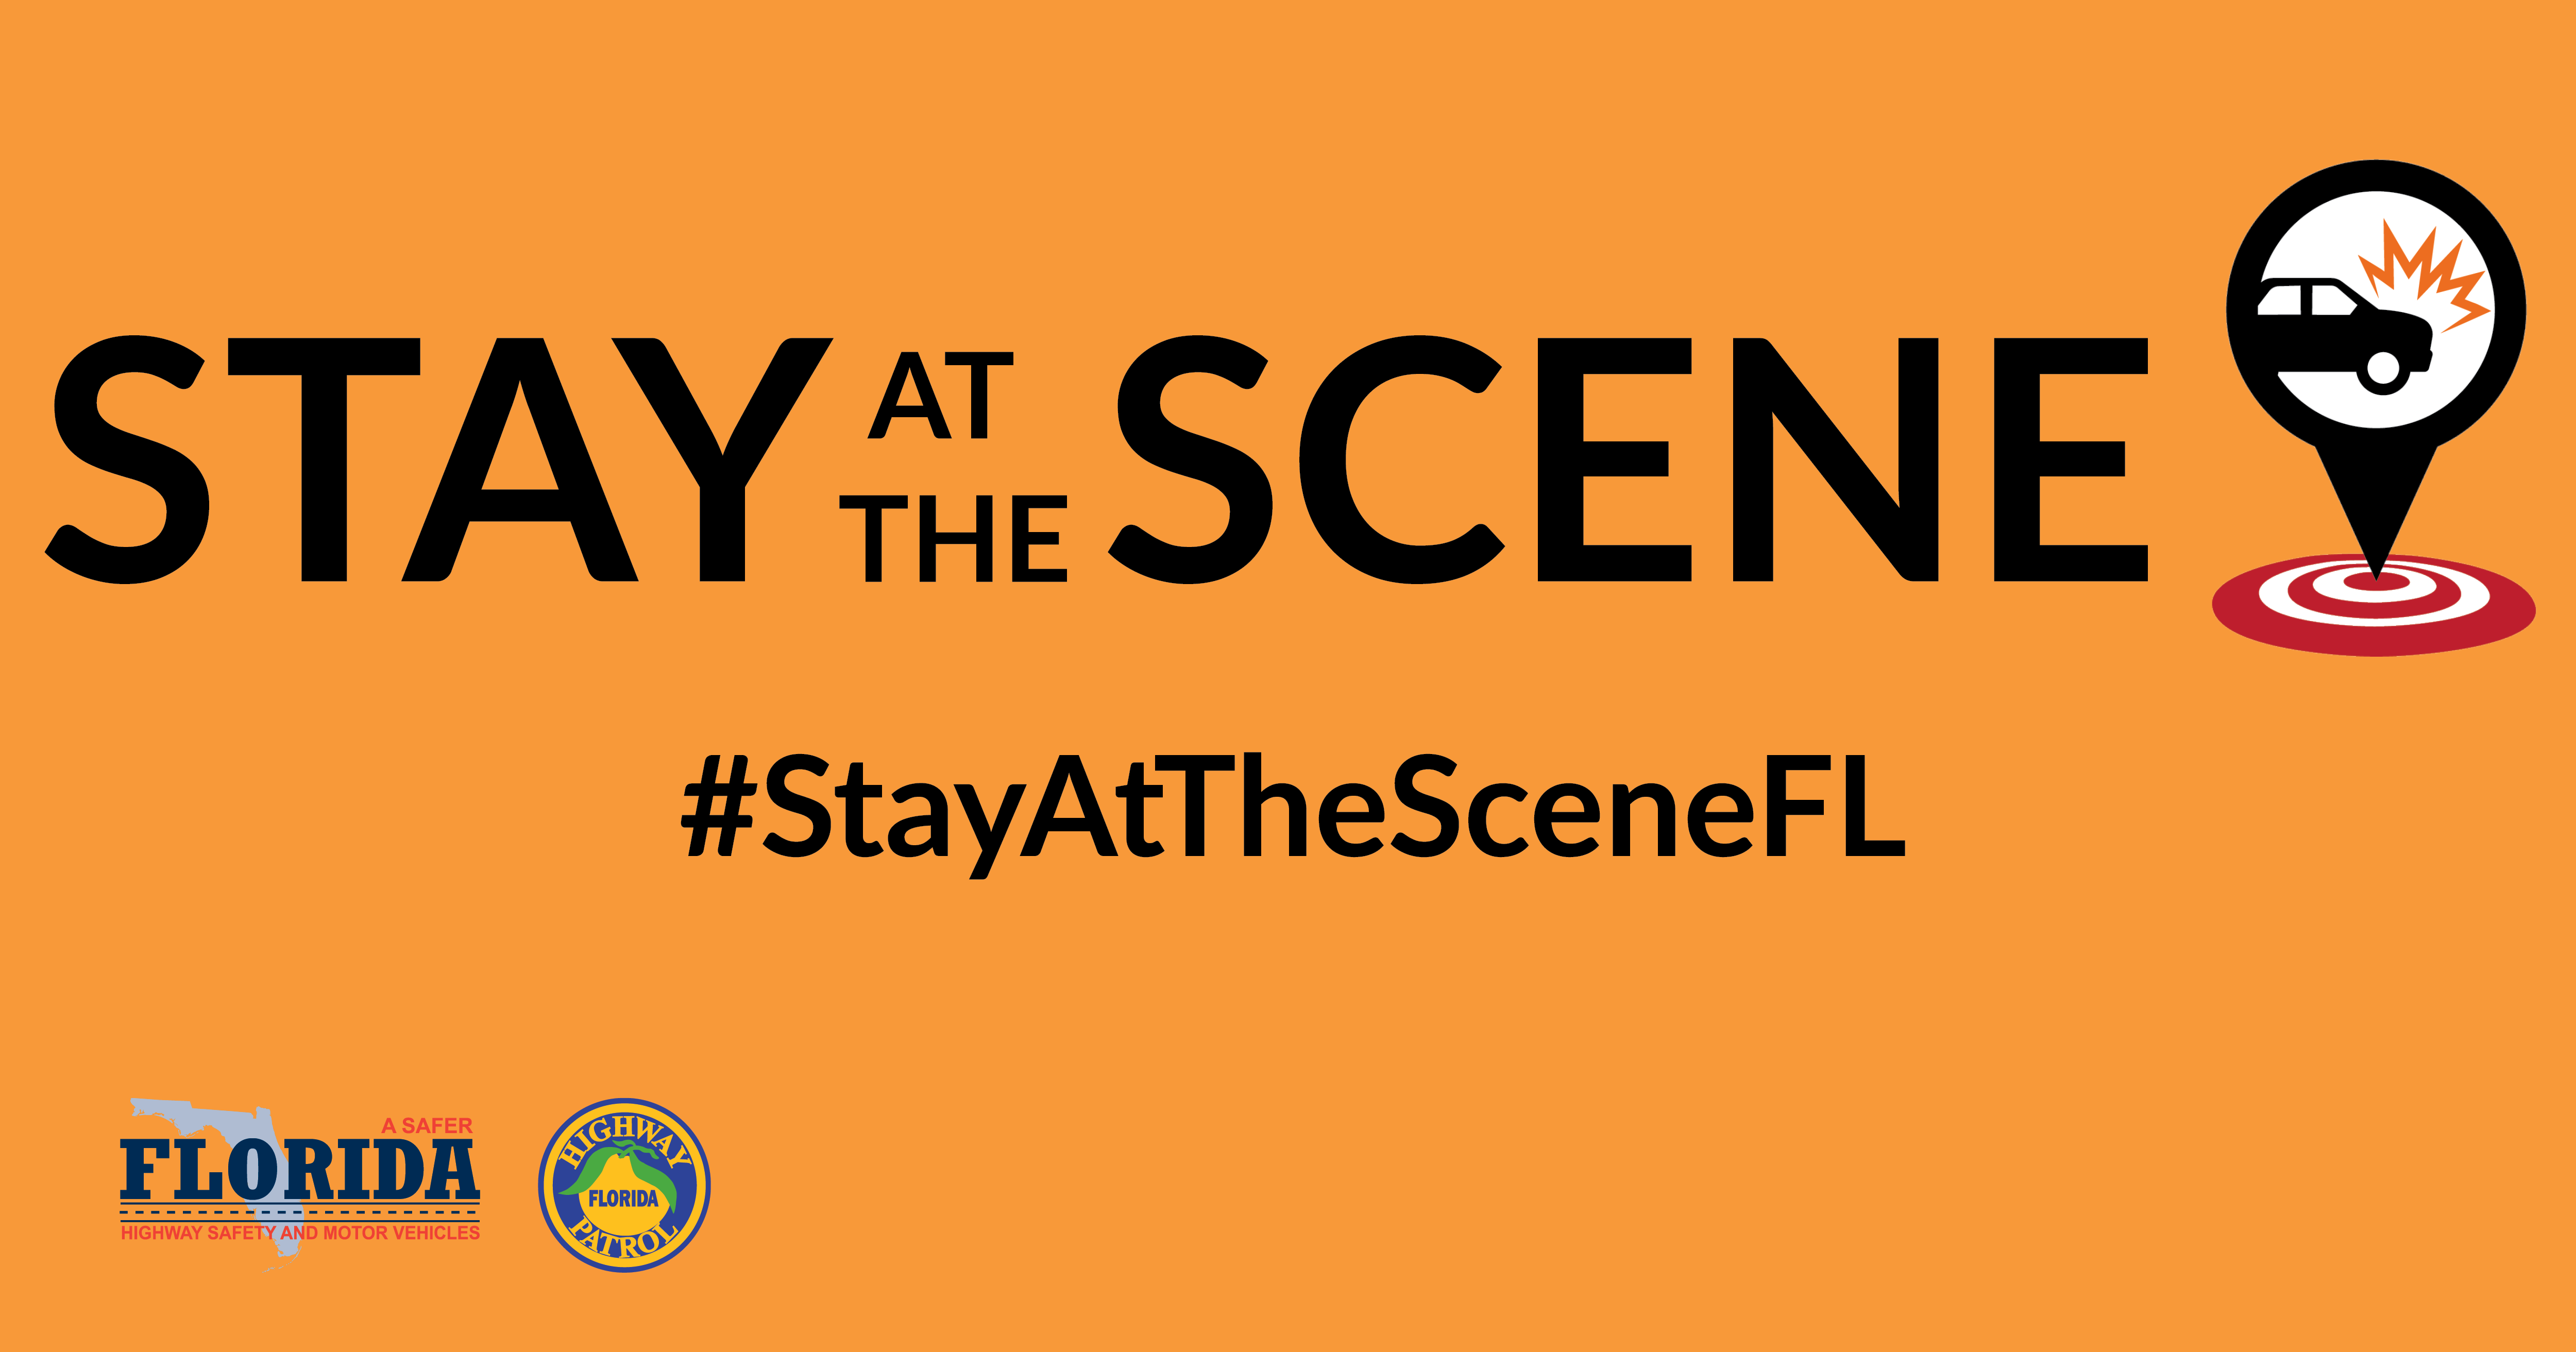 Stay At The Scene Florida Highway Safety And Motor Vehicles